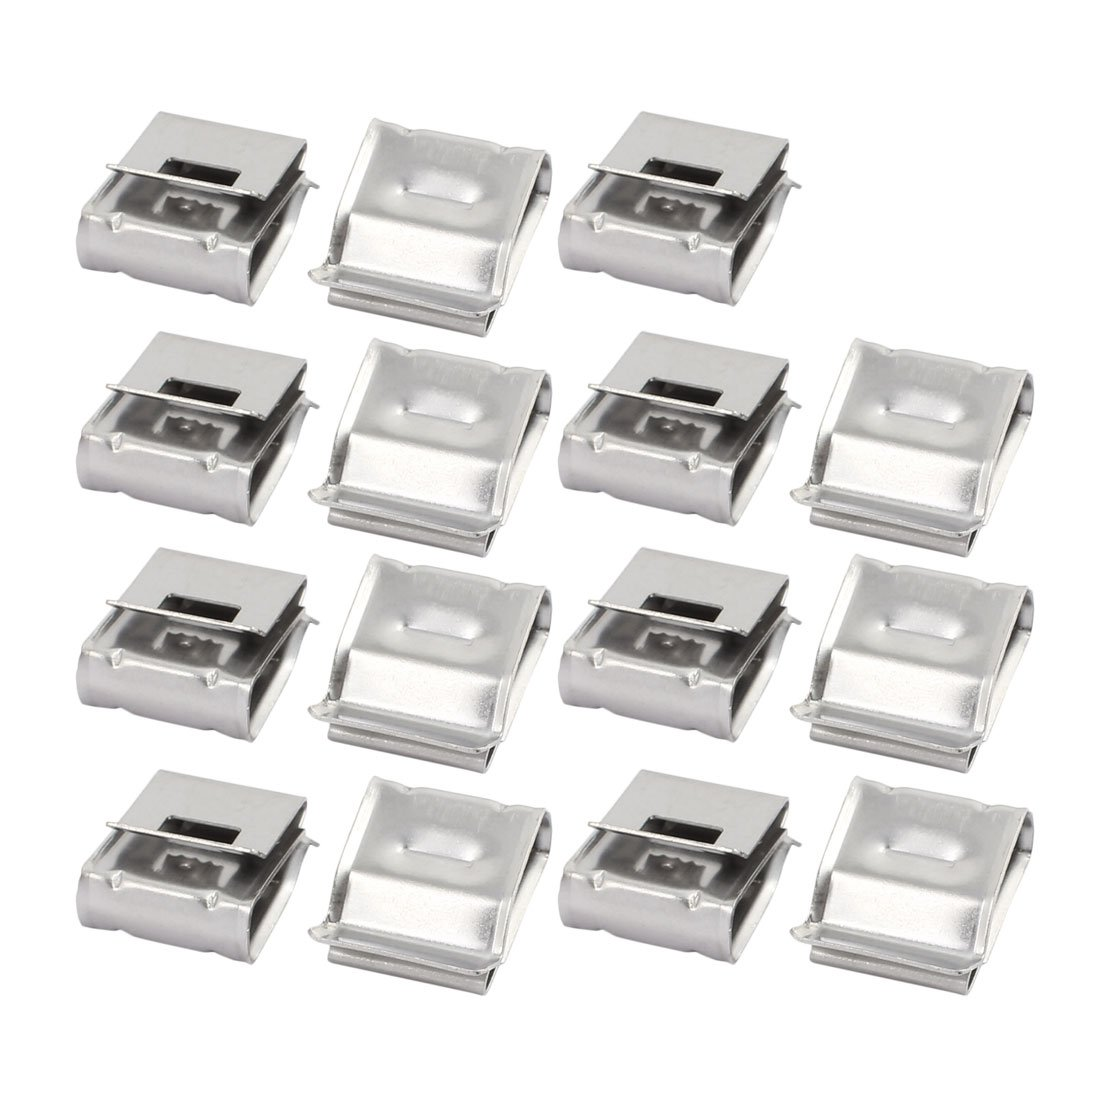 uxcell 15Pcs Solar Mounting Stainless Steel Flat Cable Clamp Fit for 2 x 5mm Dia Cable